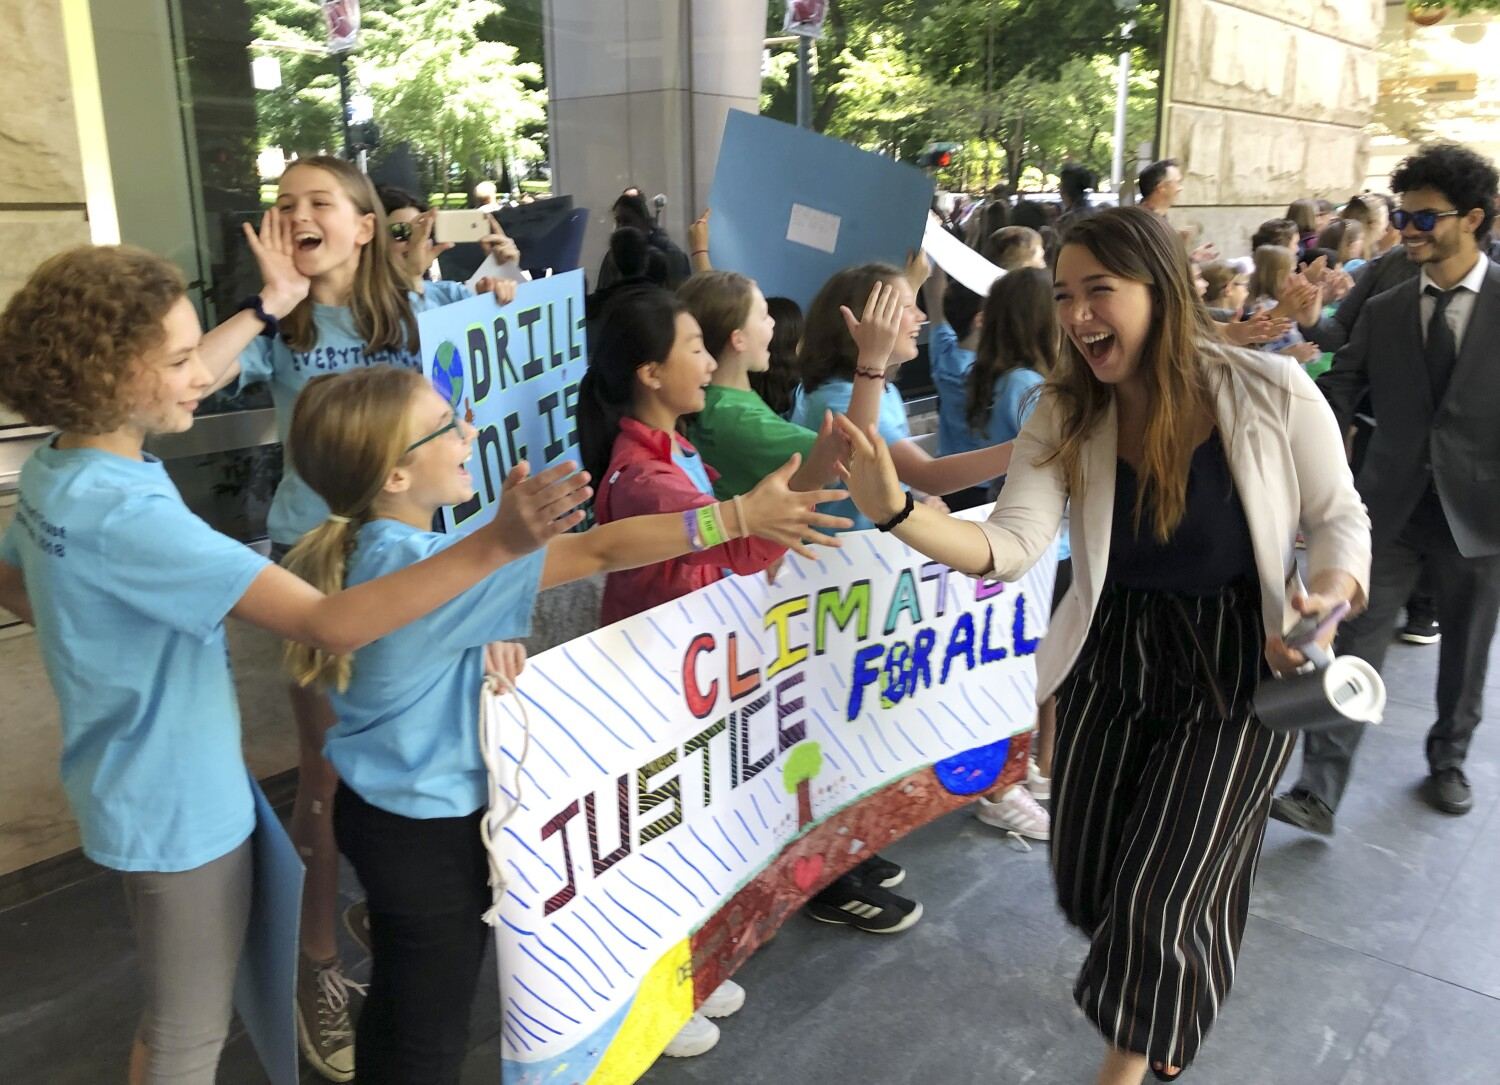 Court dismisses climate change lawsuit brought by 21 young Americans